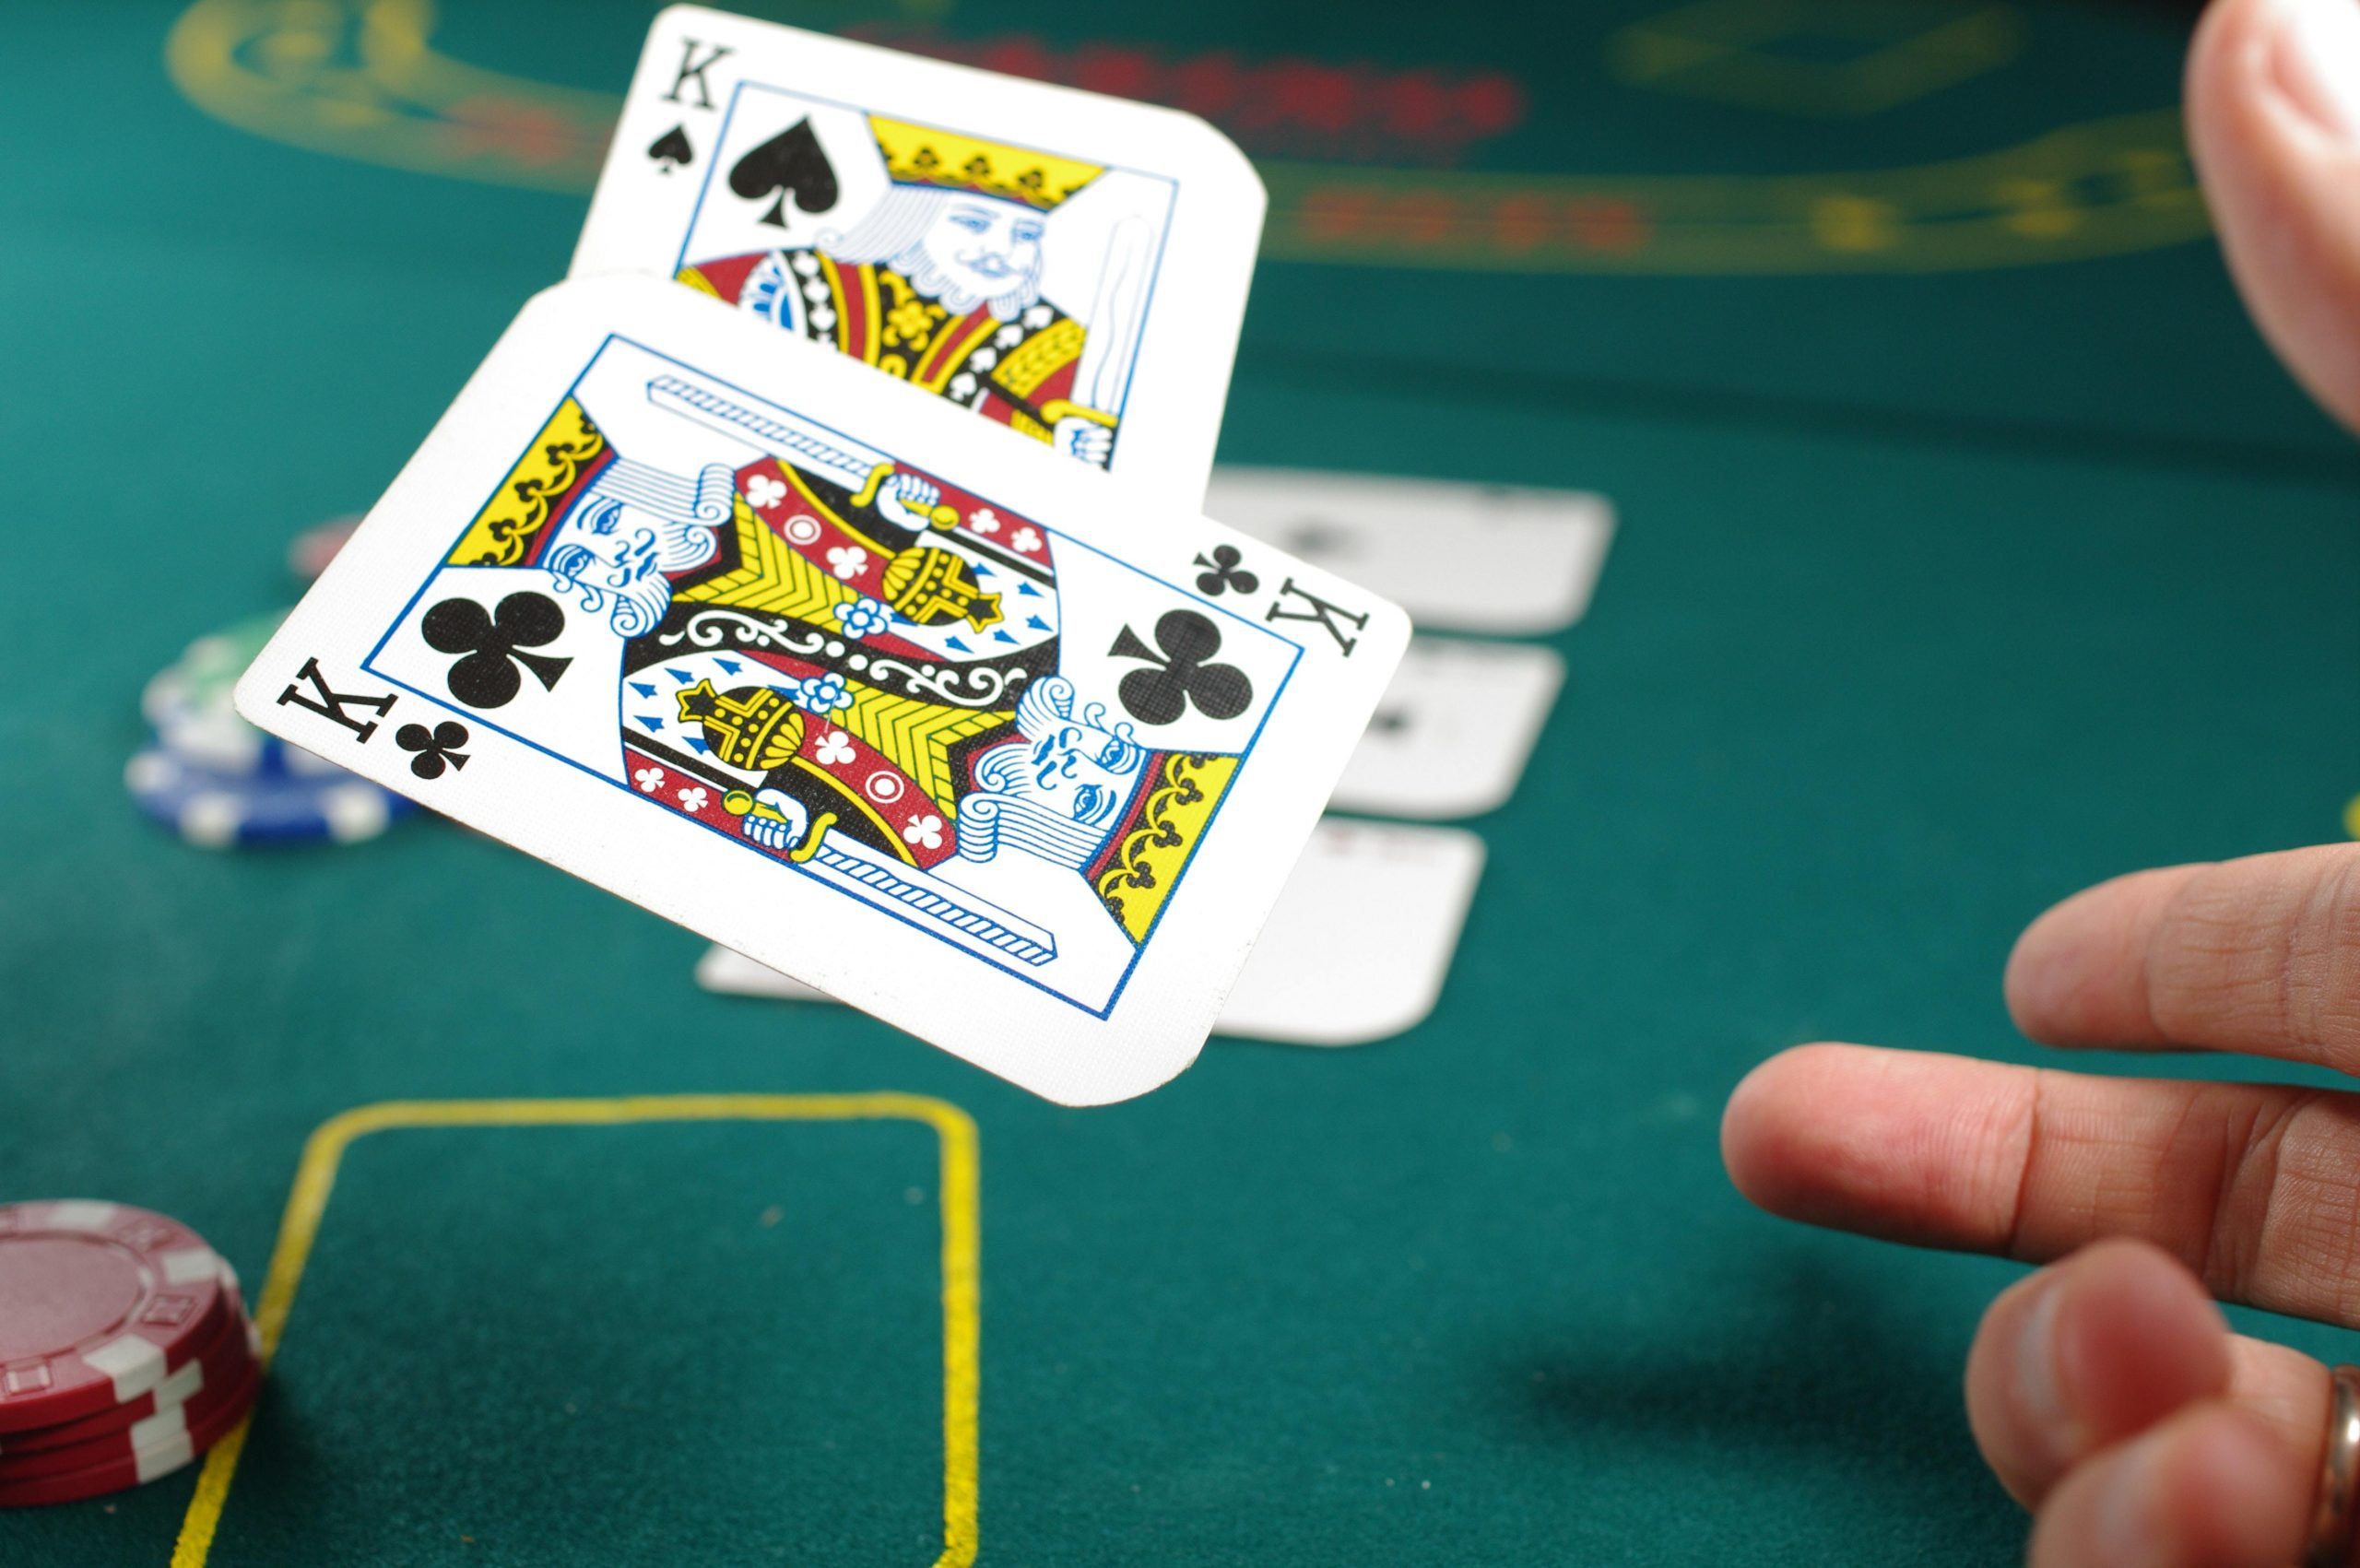 How the MIT Blackjack Team Beat the House and Got Rich